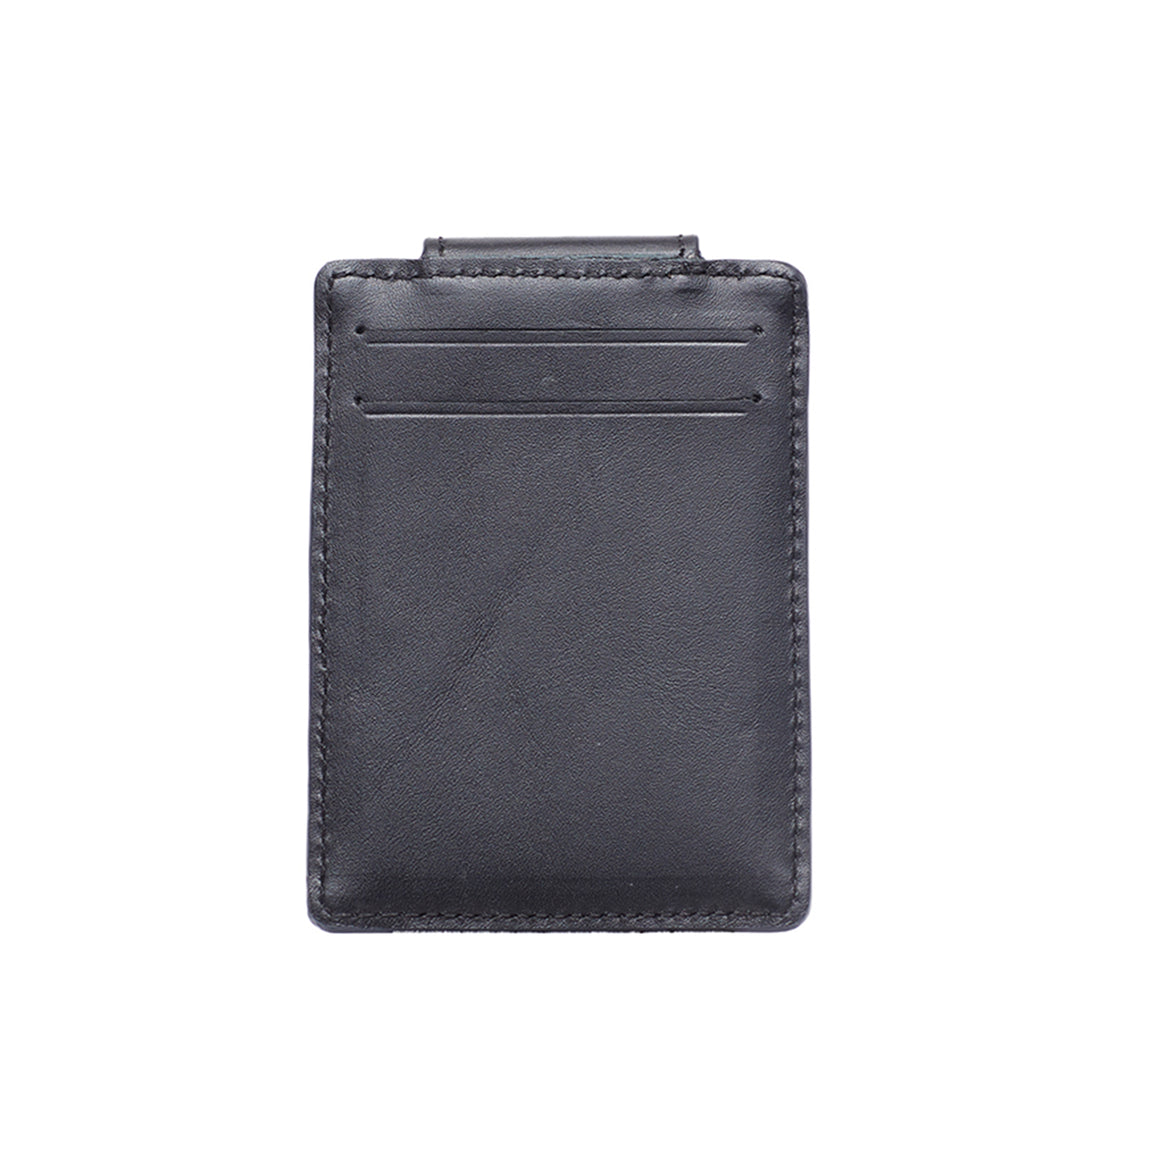 WT 0042 - TOHL VECCHIA MEN'S WALLET - CHARCOAL BLACK